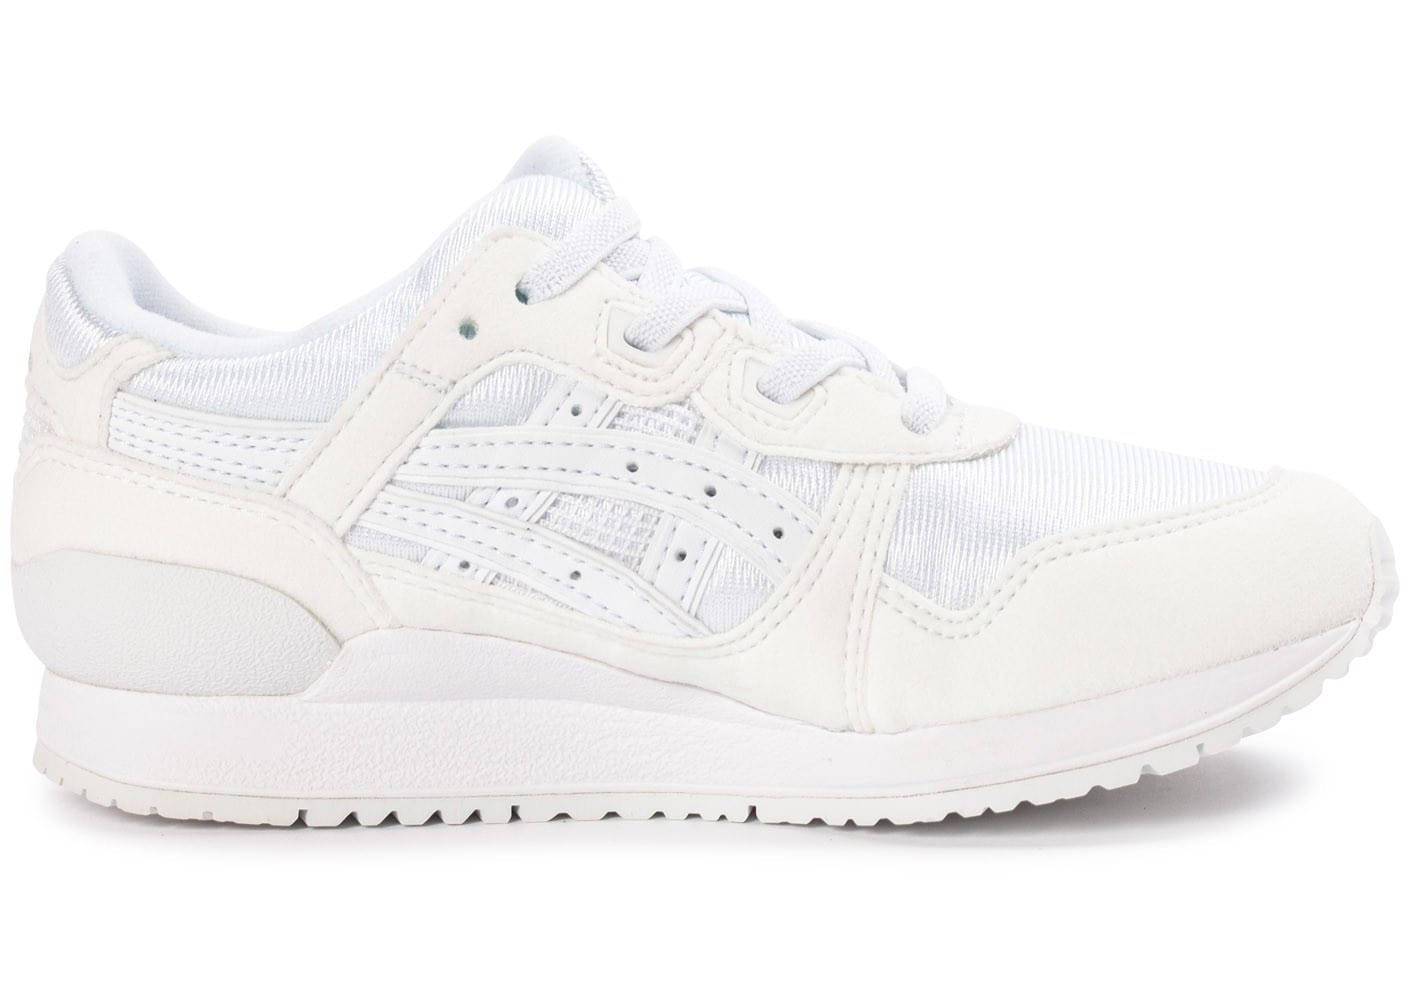 Under Armour Boys' Pre School X Level Scramjet LTW Chaussures Asics blanches Fashion homme  US6.5-7 / EU37 / UK4.5-5 / CN37  US6 / EU36 / UK4 / CN36 ghZZh